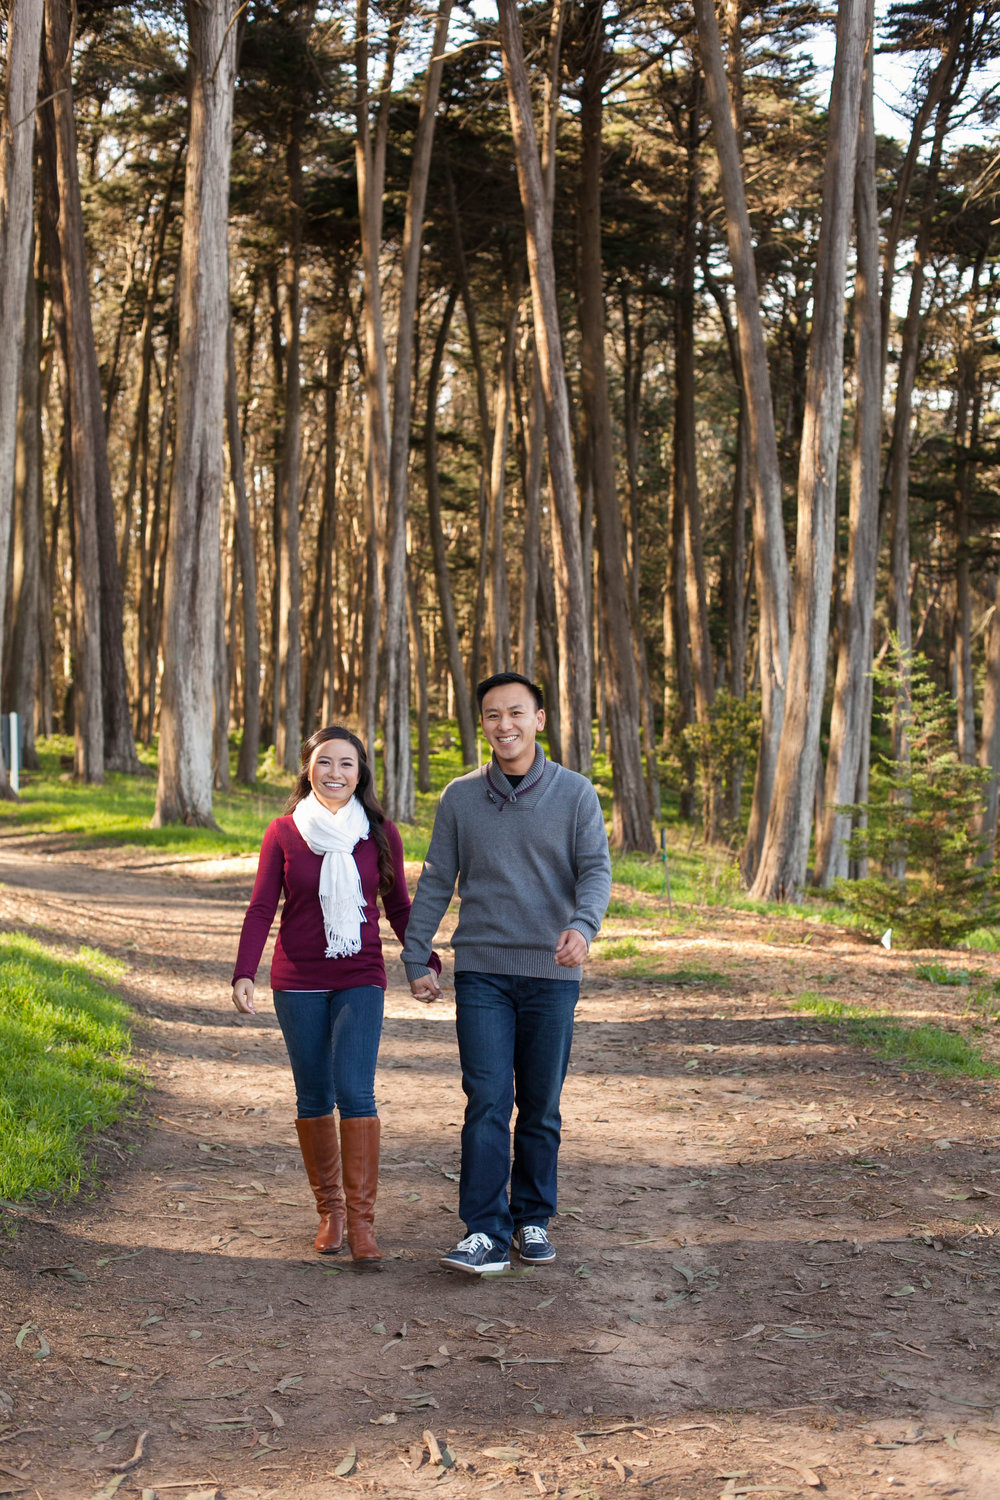 Meo Baaklini-San Francisco Presidio Engagement Photographer06.jpg